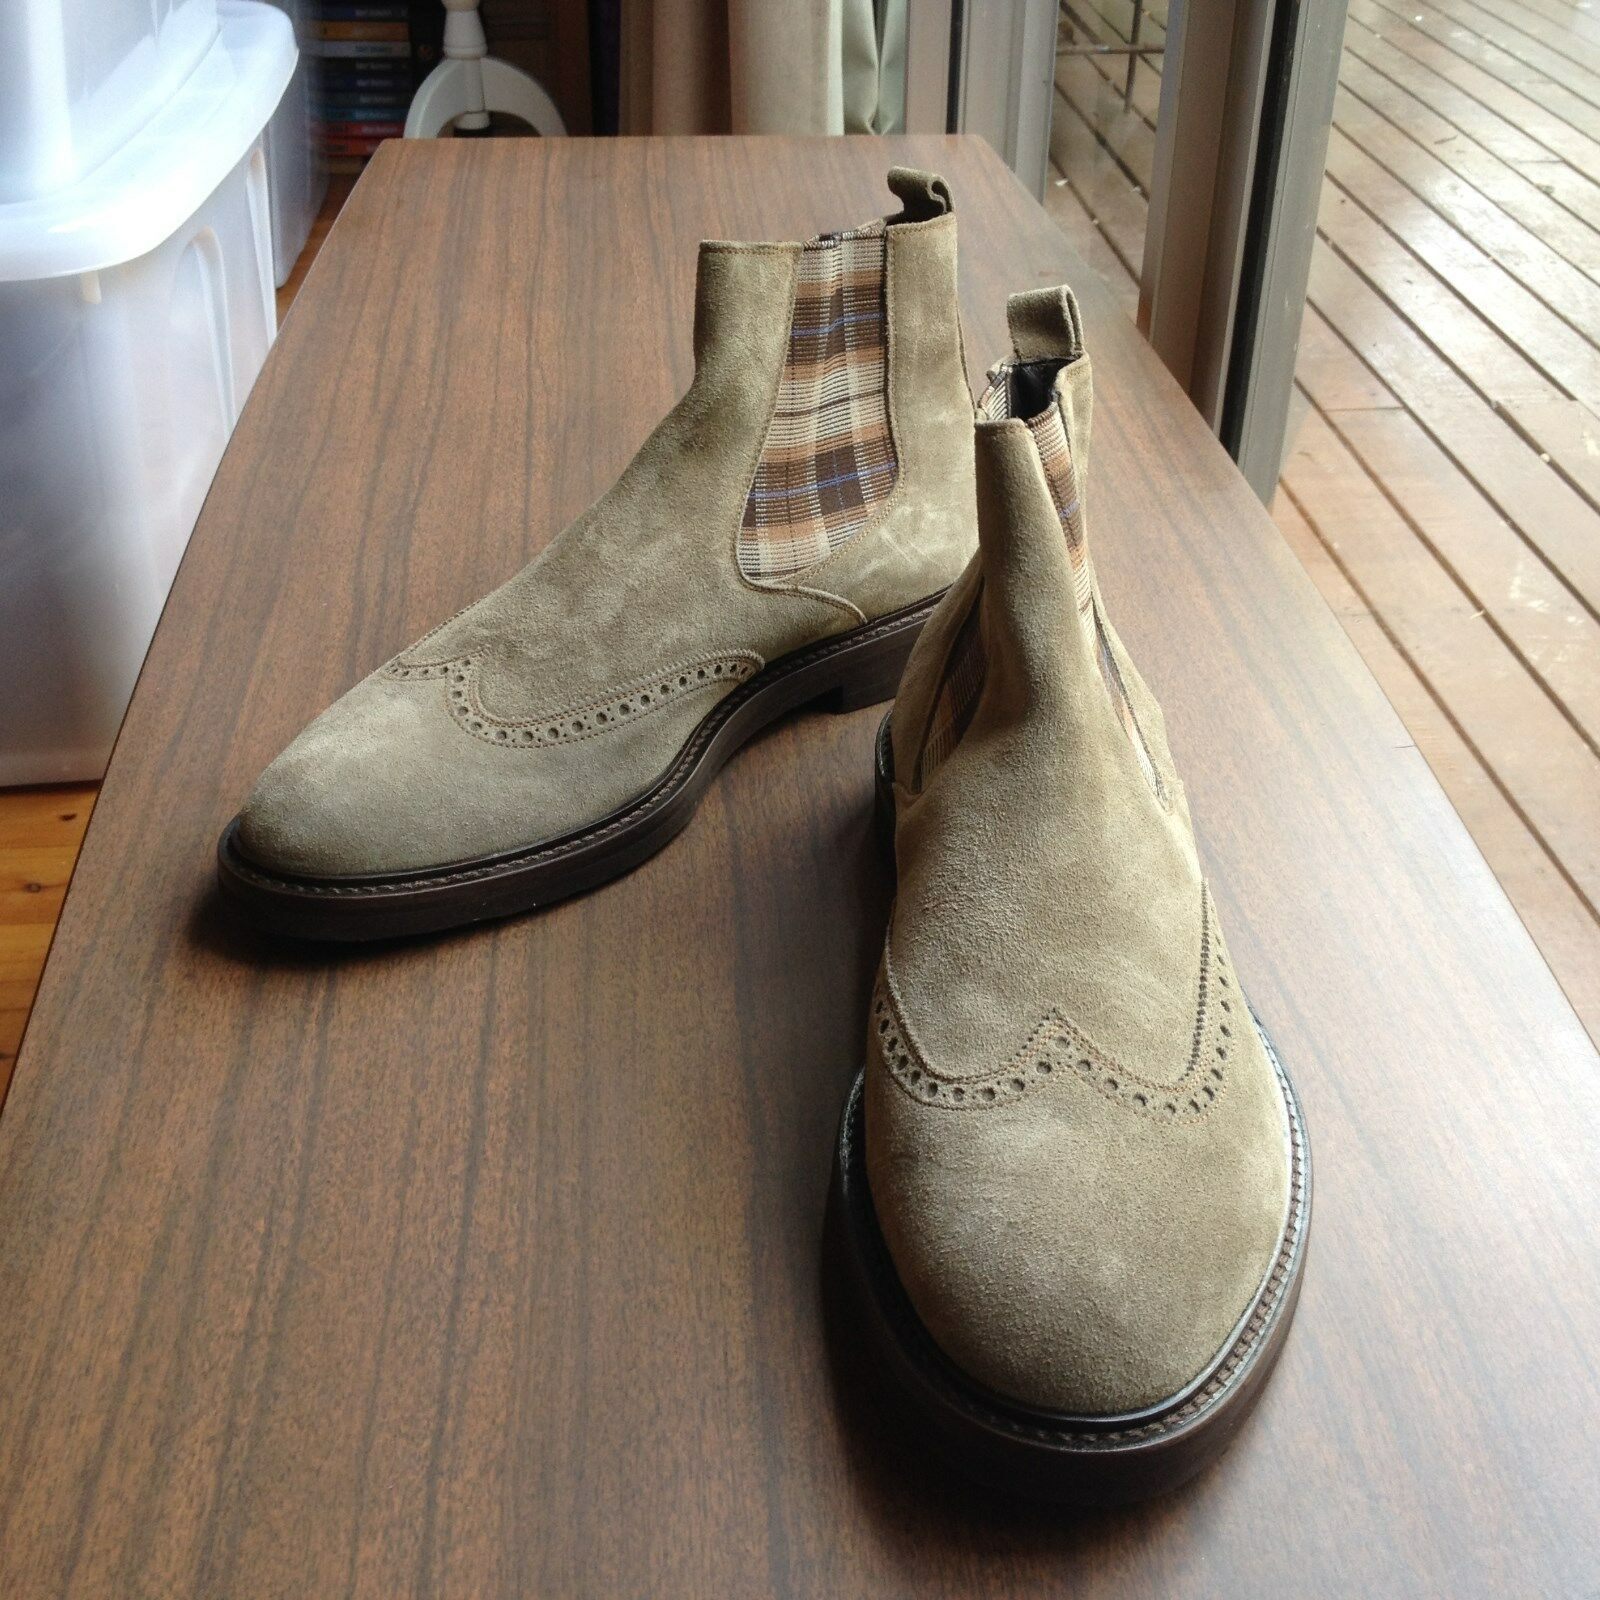 ANTONIO MAURIZI SUEDE BROGUE BOOTS SIZE 44 MADE IN ITALY